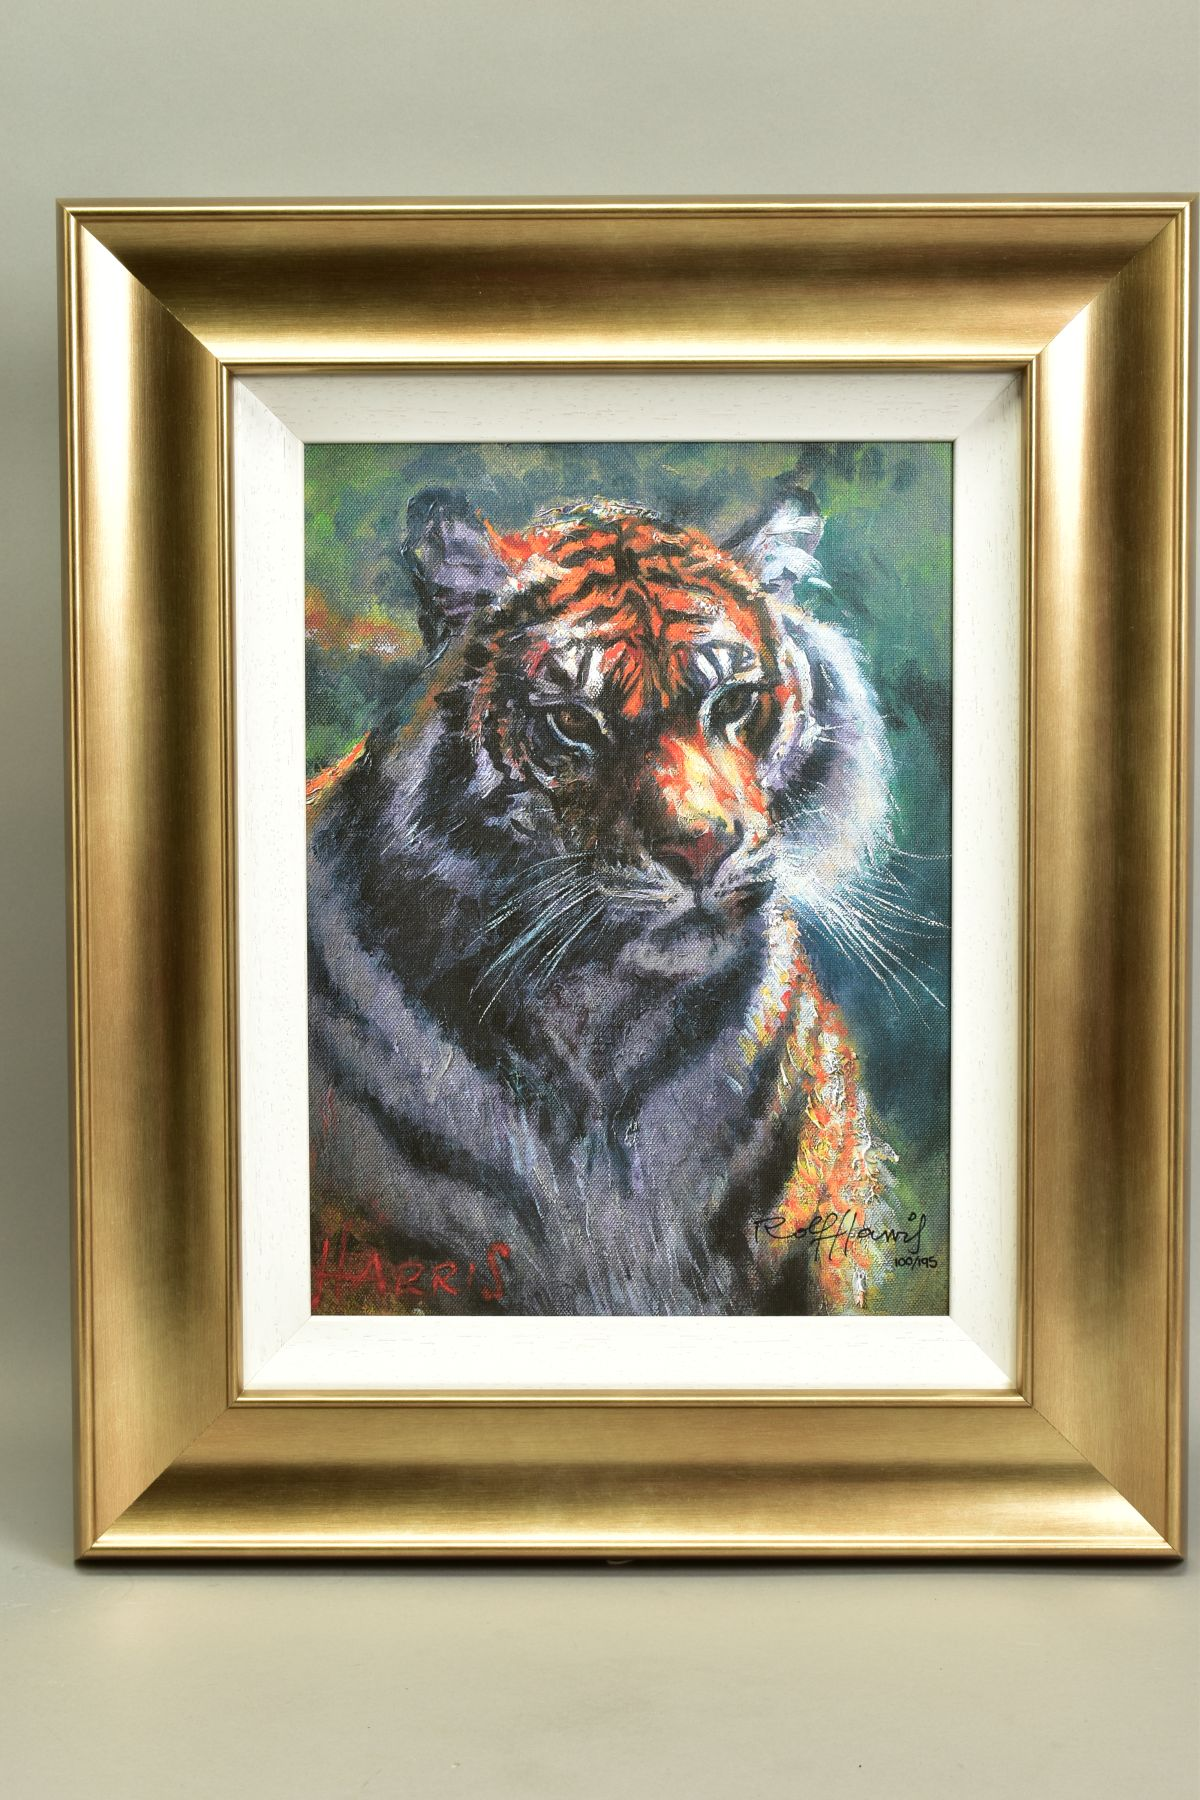 ROLF HARRIS (AUSTRALIAN 1930), 'Tiger in The Sun', a Limited Edition print, 100/95, signed bottom